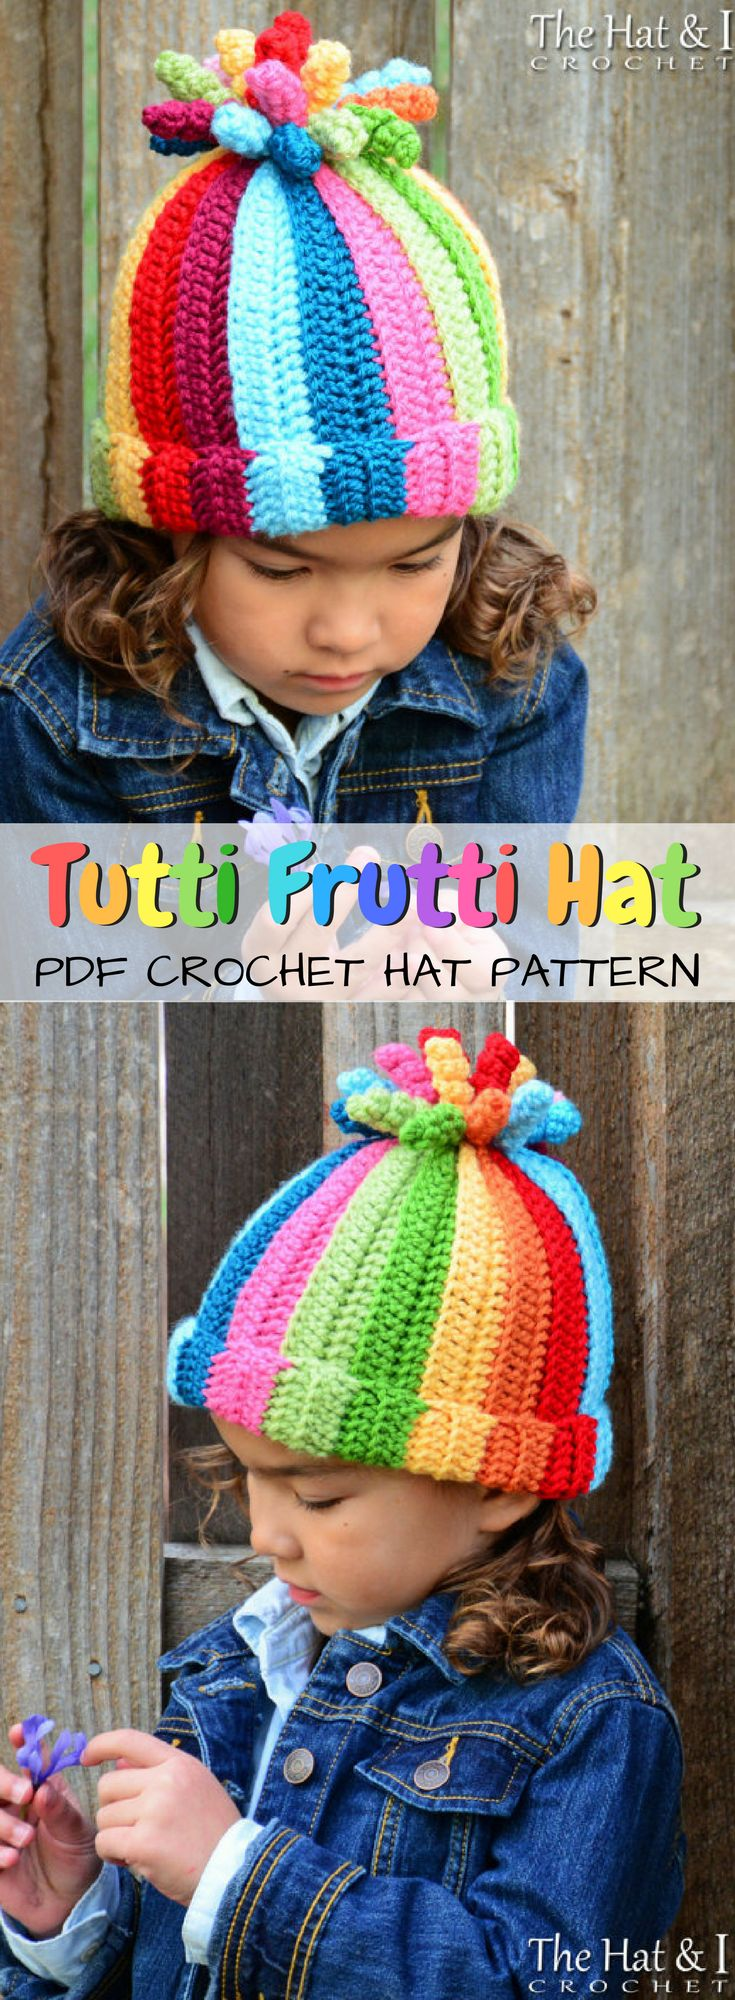 Multi-colored striped Tutti Frutti Beanie crocheted hat pattern! I love this fun hat with a cute spray of colors in place of a pompom! Adorable! #etsy #ad #crochet #pattern #instant #download #pdf